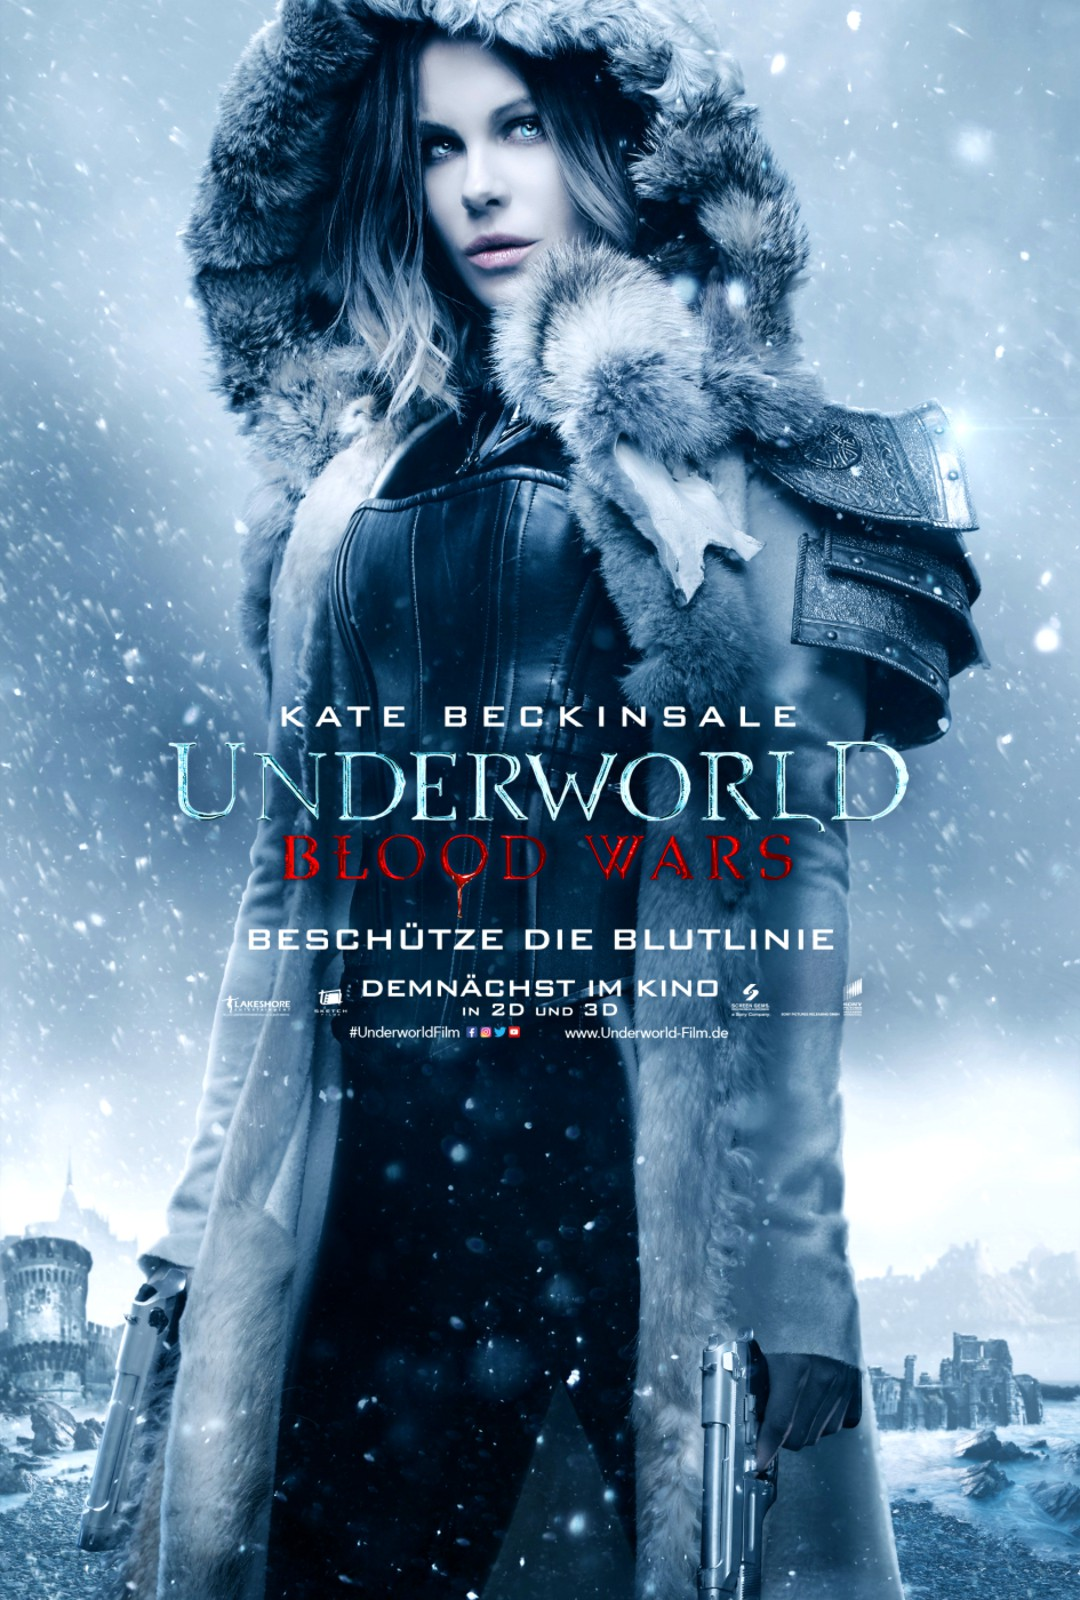 Underworld 5 - Blood Wars - Bild 5 von 7